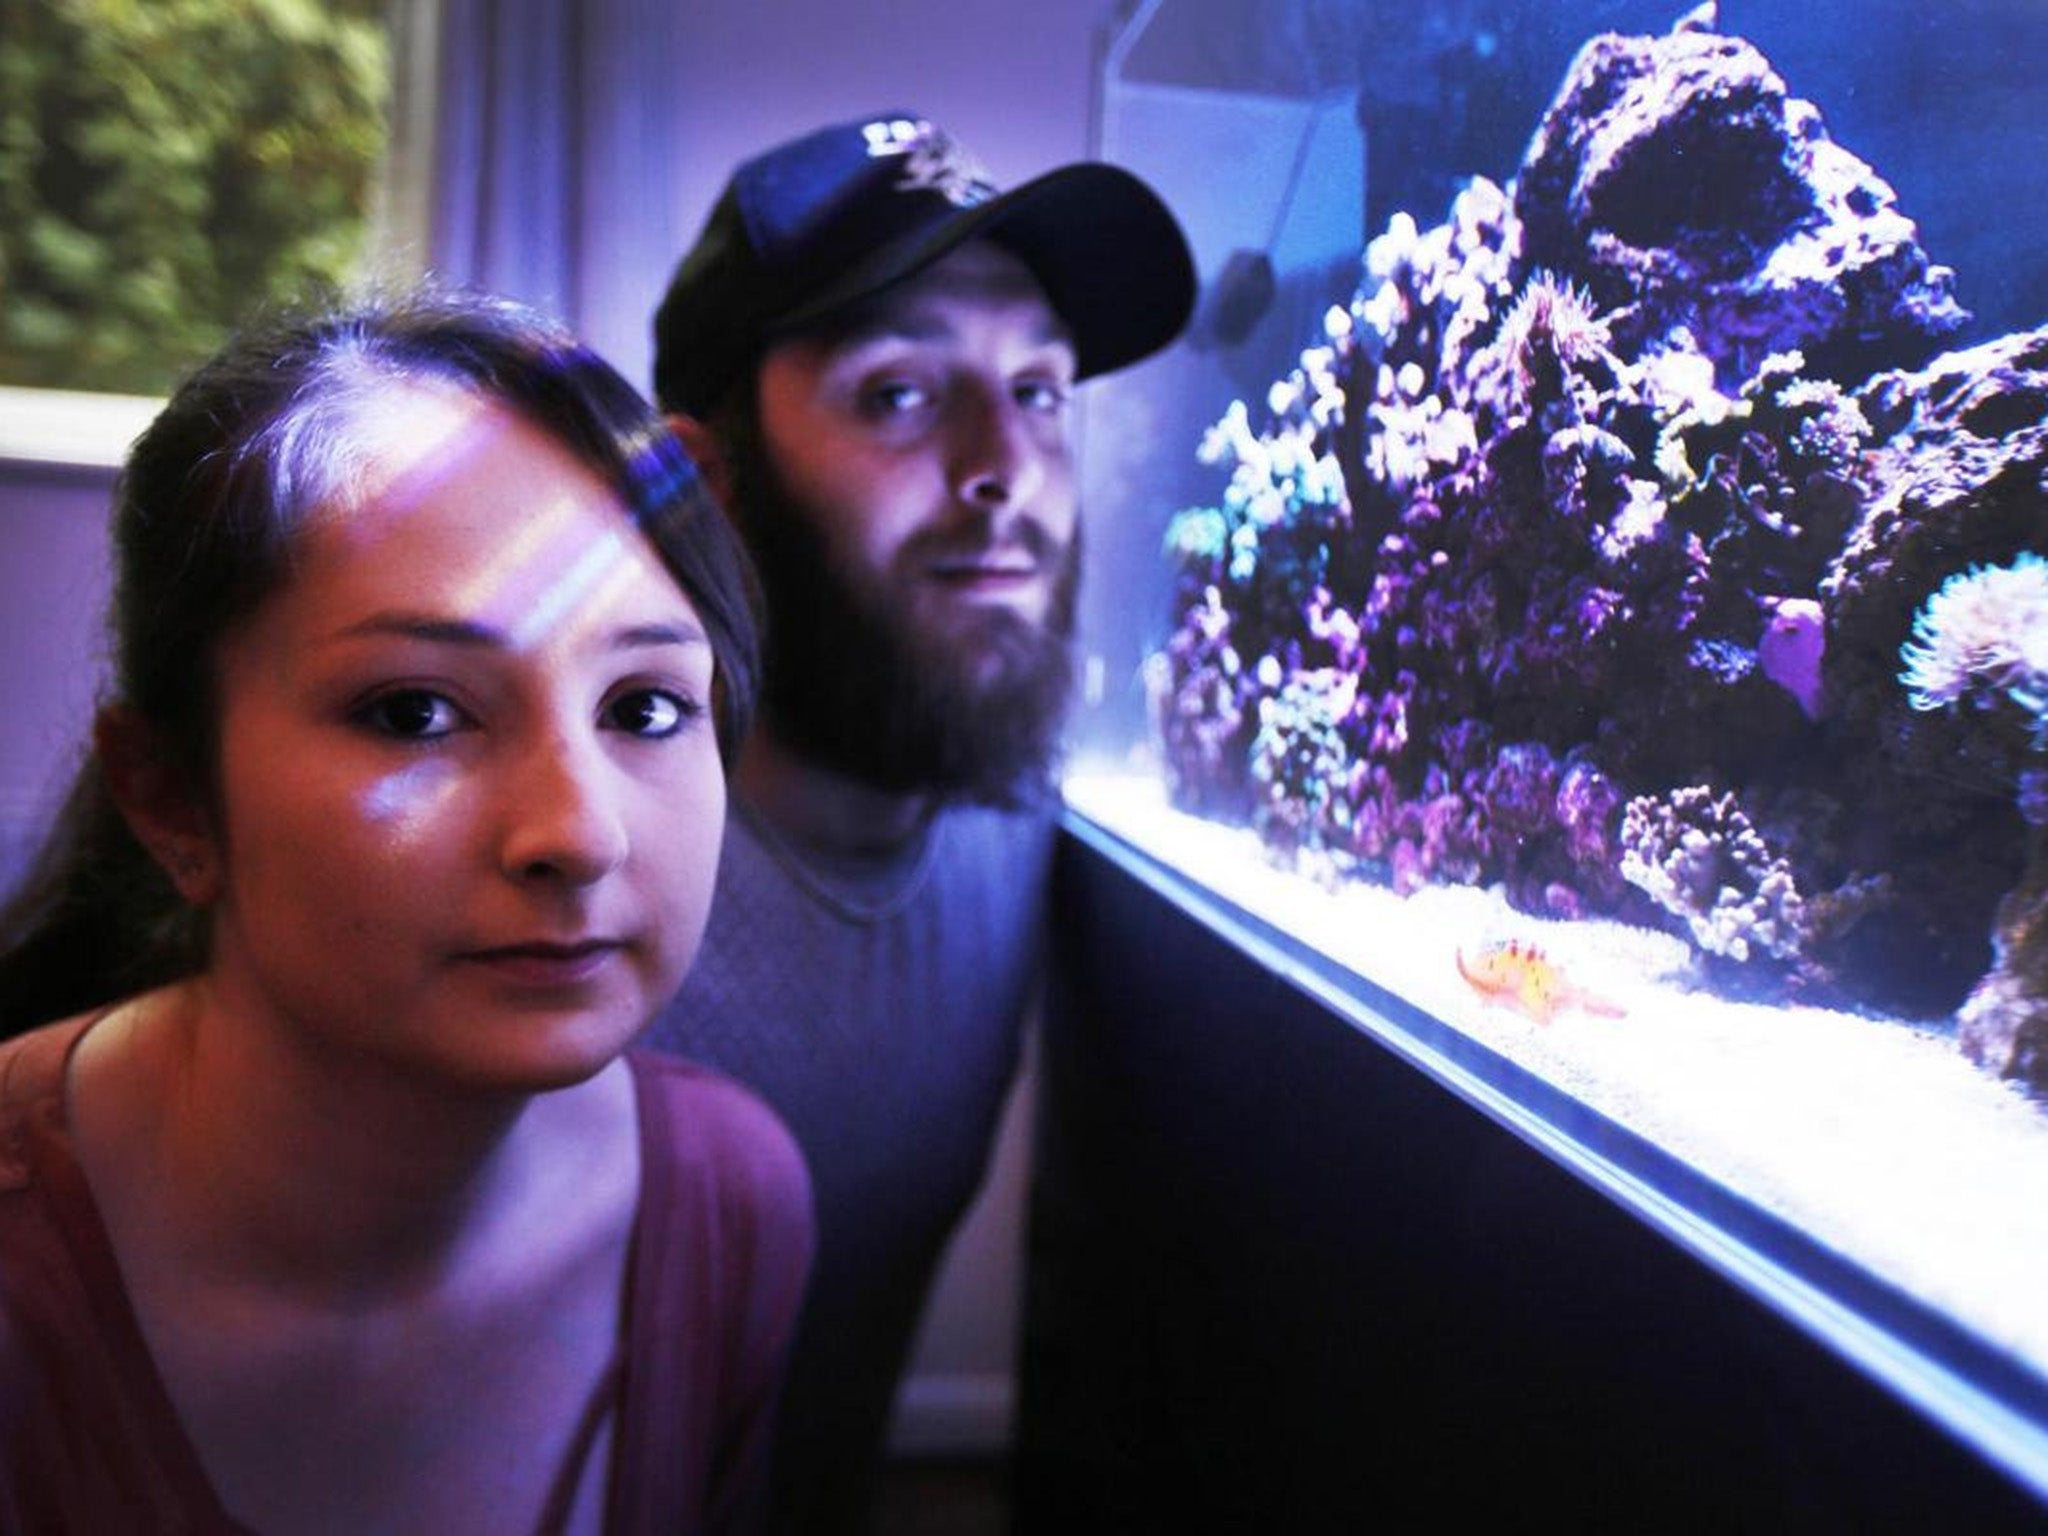 Fish owner tells how cleaning out tank released deadly palytoxin that poisoned family and led to closure of entire street